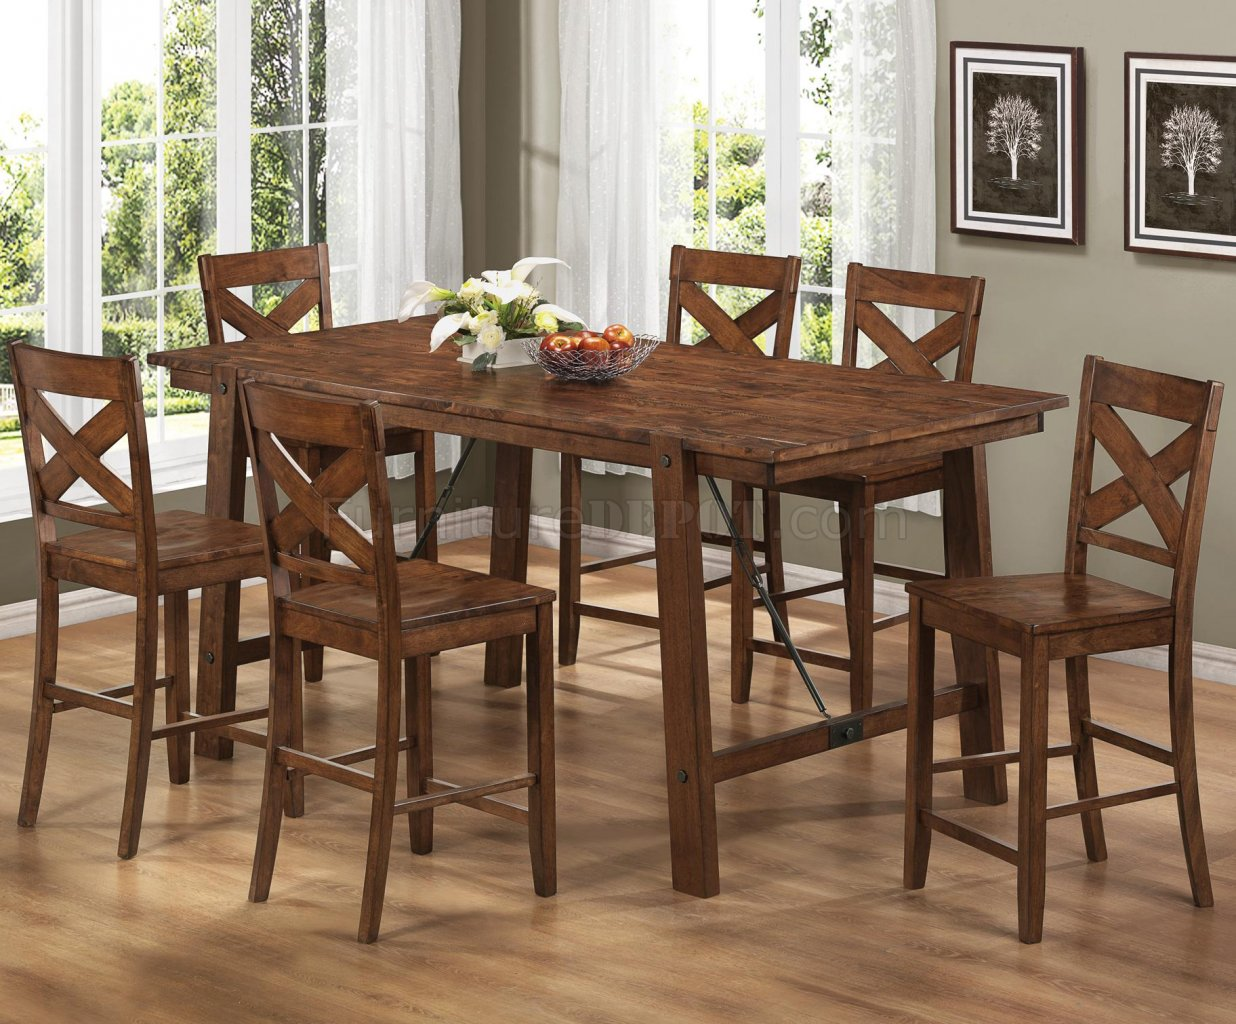 lawson counter height dining table by coaster woptions p high kitchen table